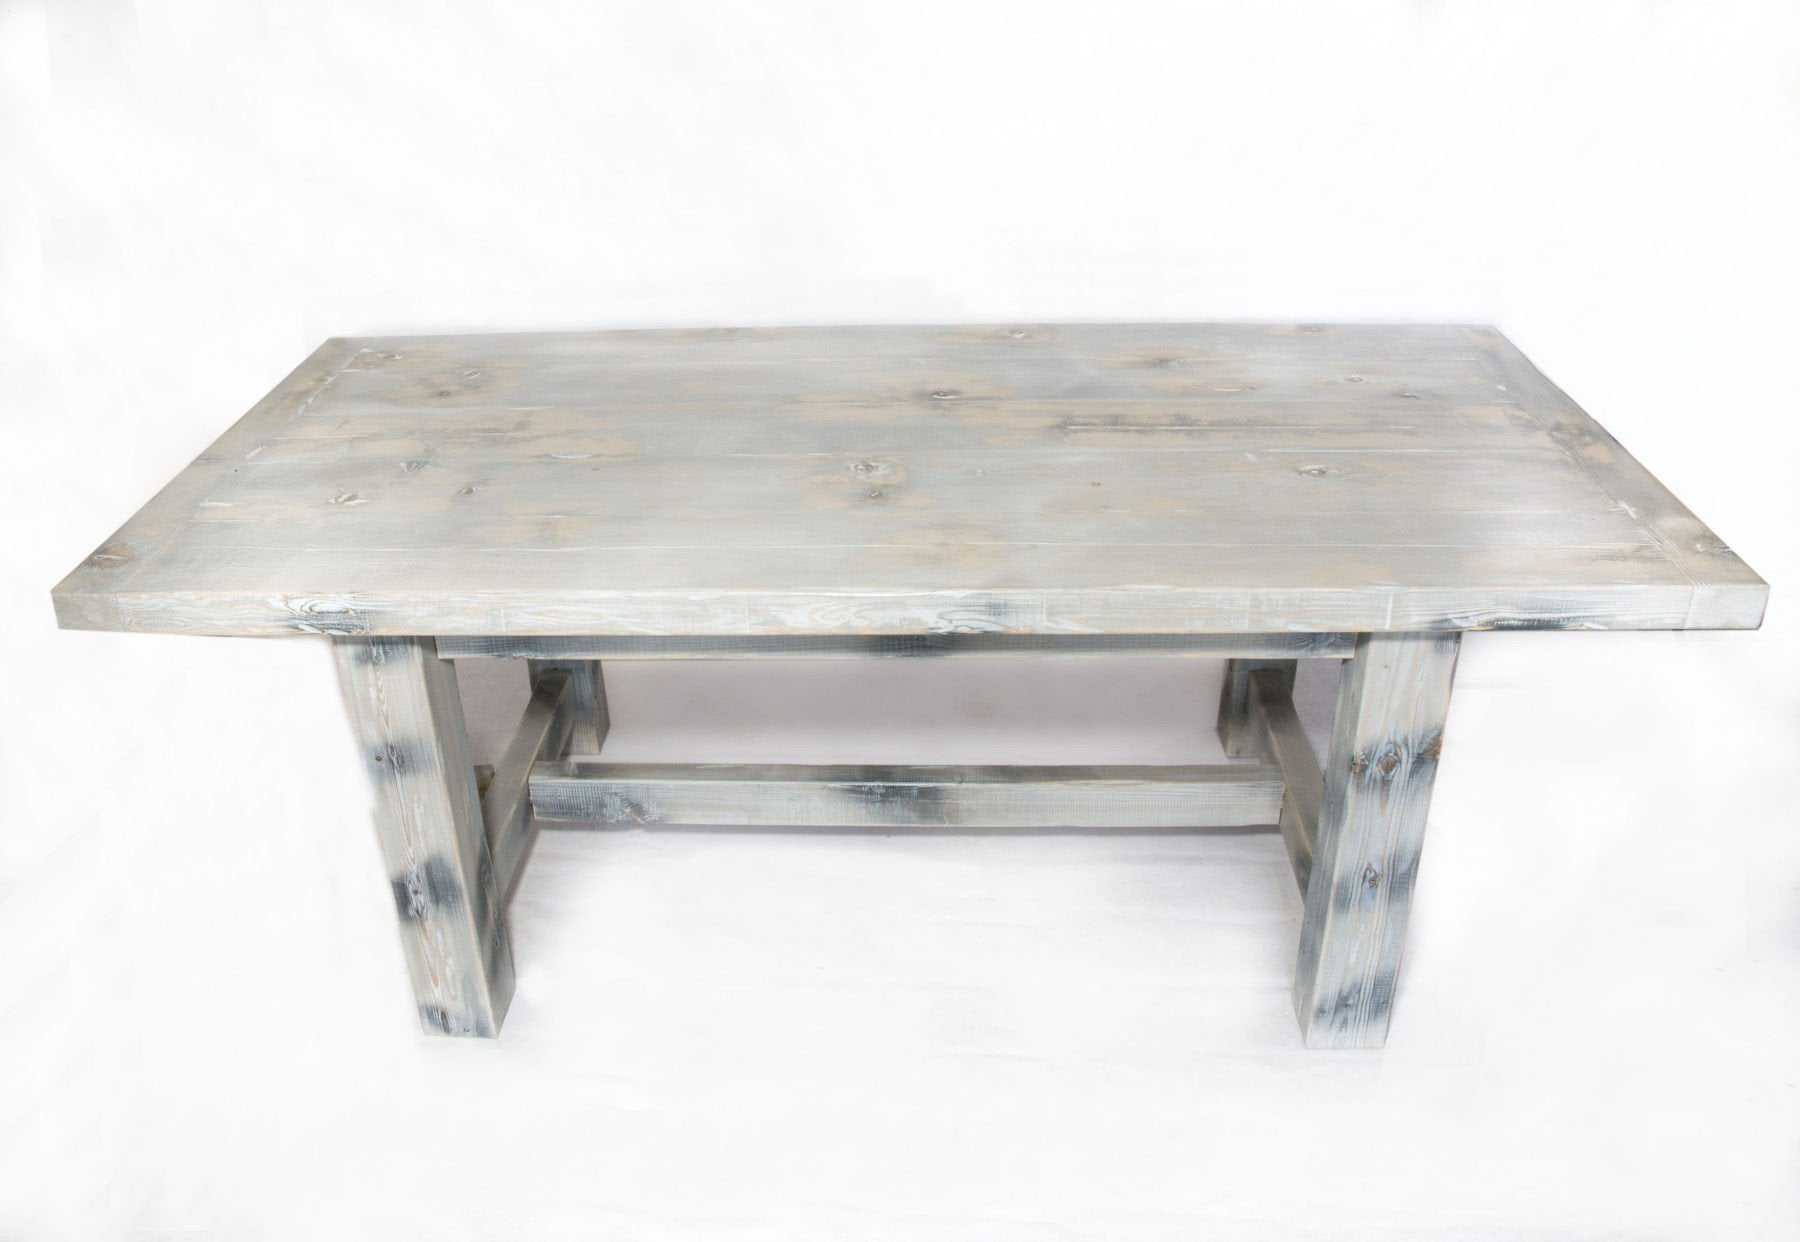 Handmade Farmhouse Dining Table Distressed Wood Weathered White Gray